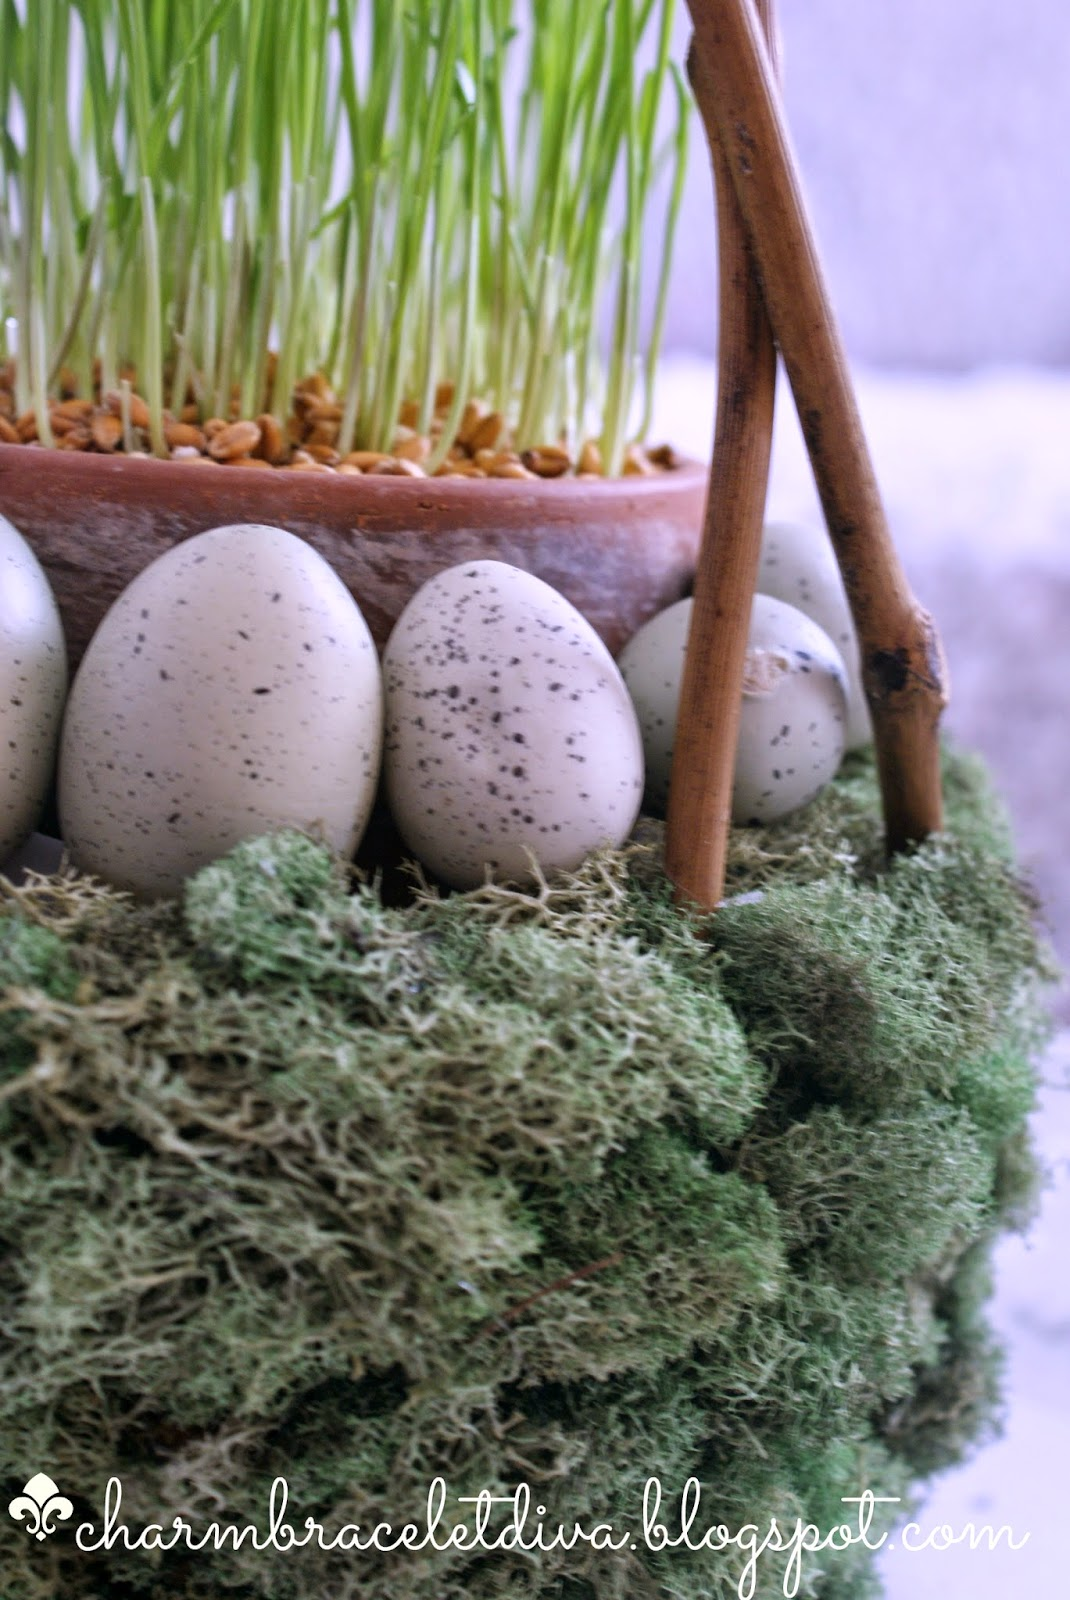 mossy Easter basket filled with wheat grass and robin's eggs